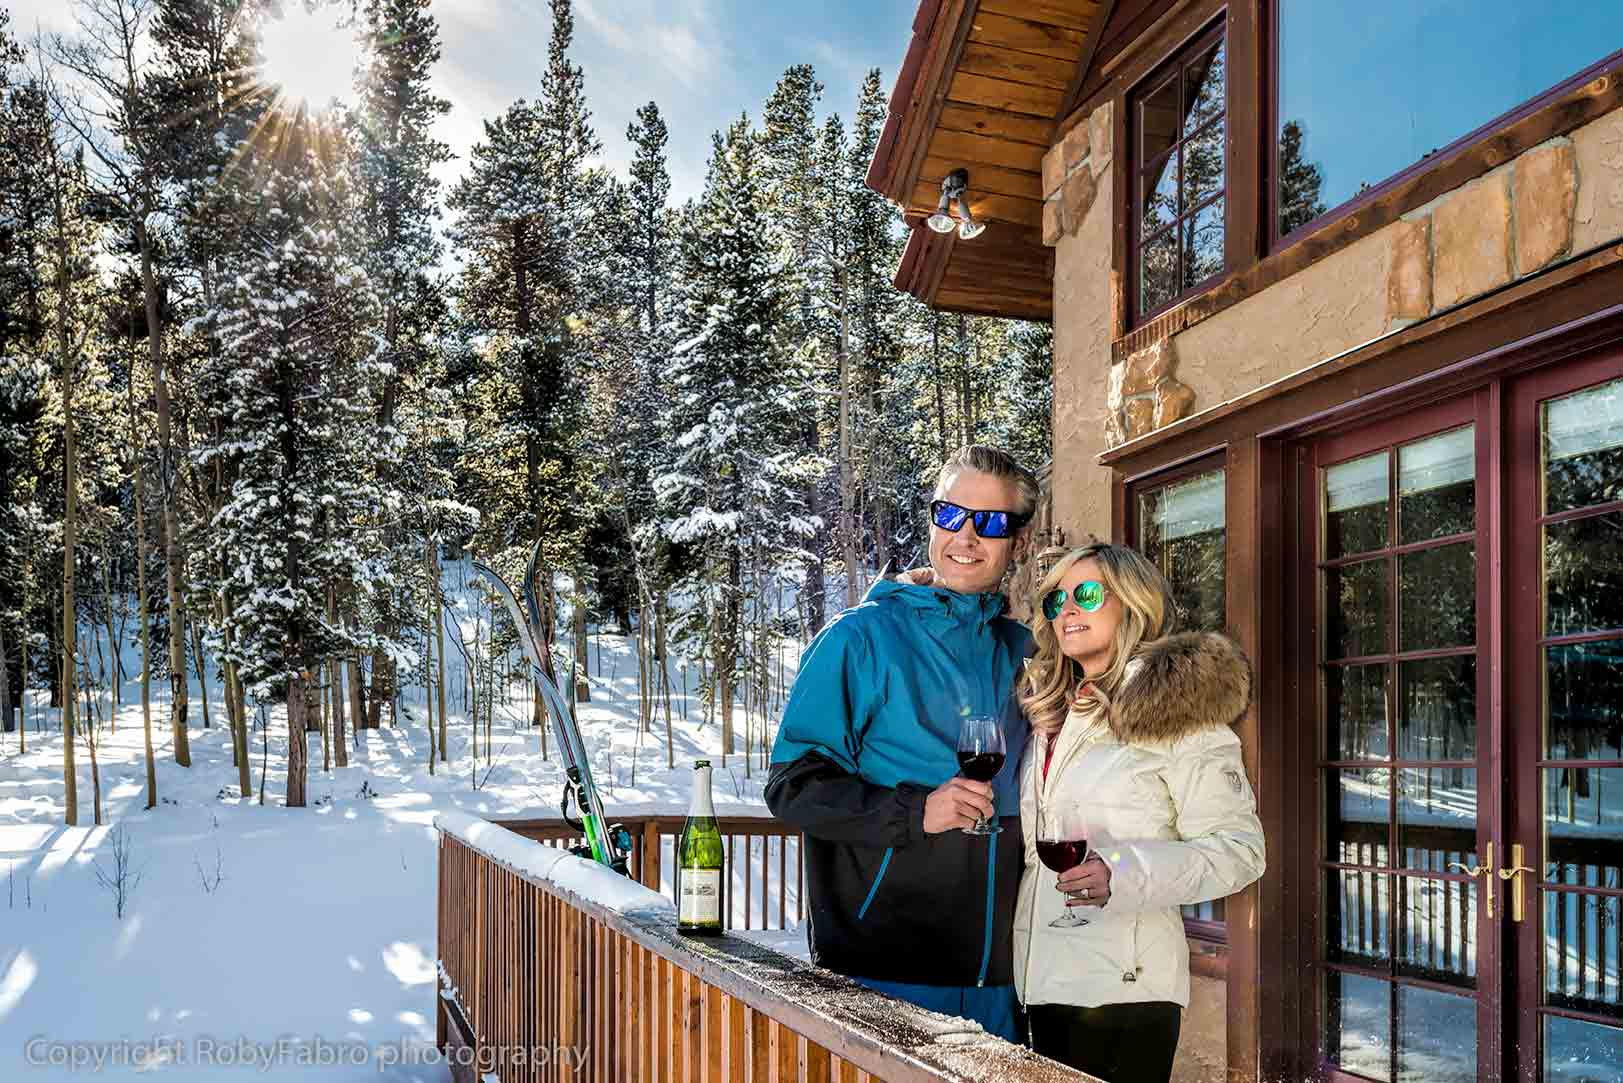 Relaxing with a glass of wine. Breckenridge, Colorado. Lifestyle photography | RobyFabro Boston photographer